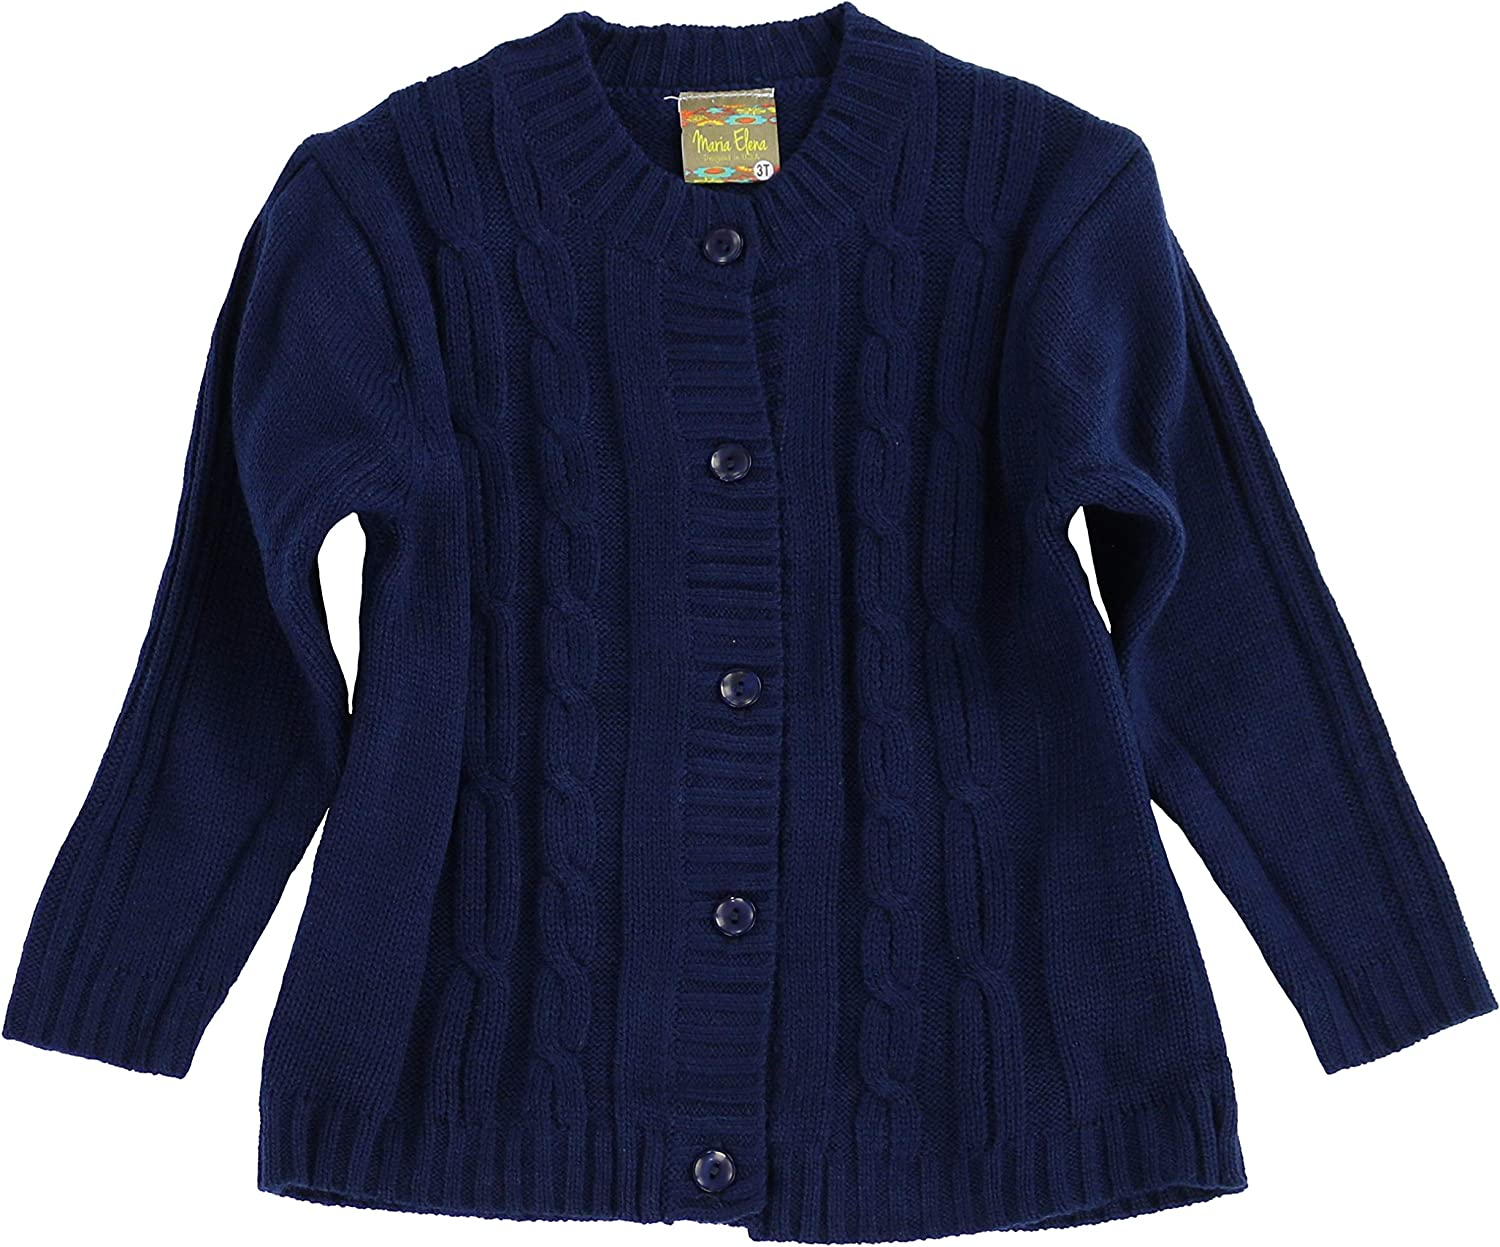 Toddlers and Girls 2-7//8 MARIA ELENA Jackie Cable Knit Cardigan